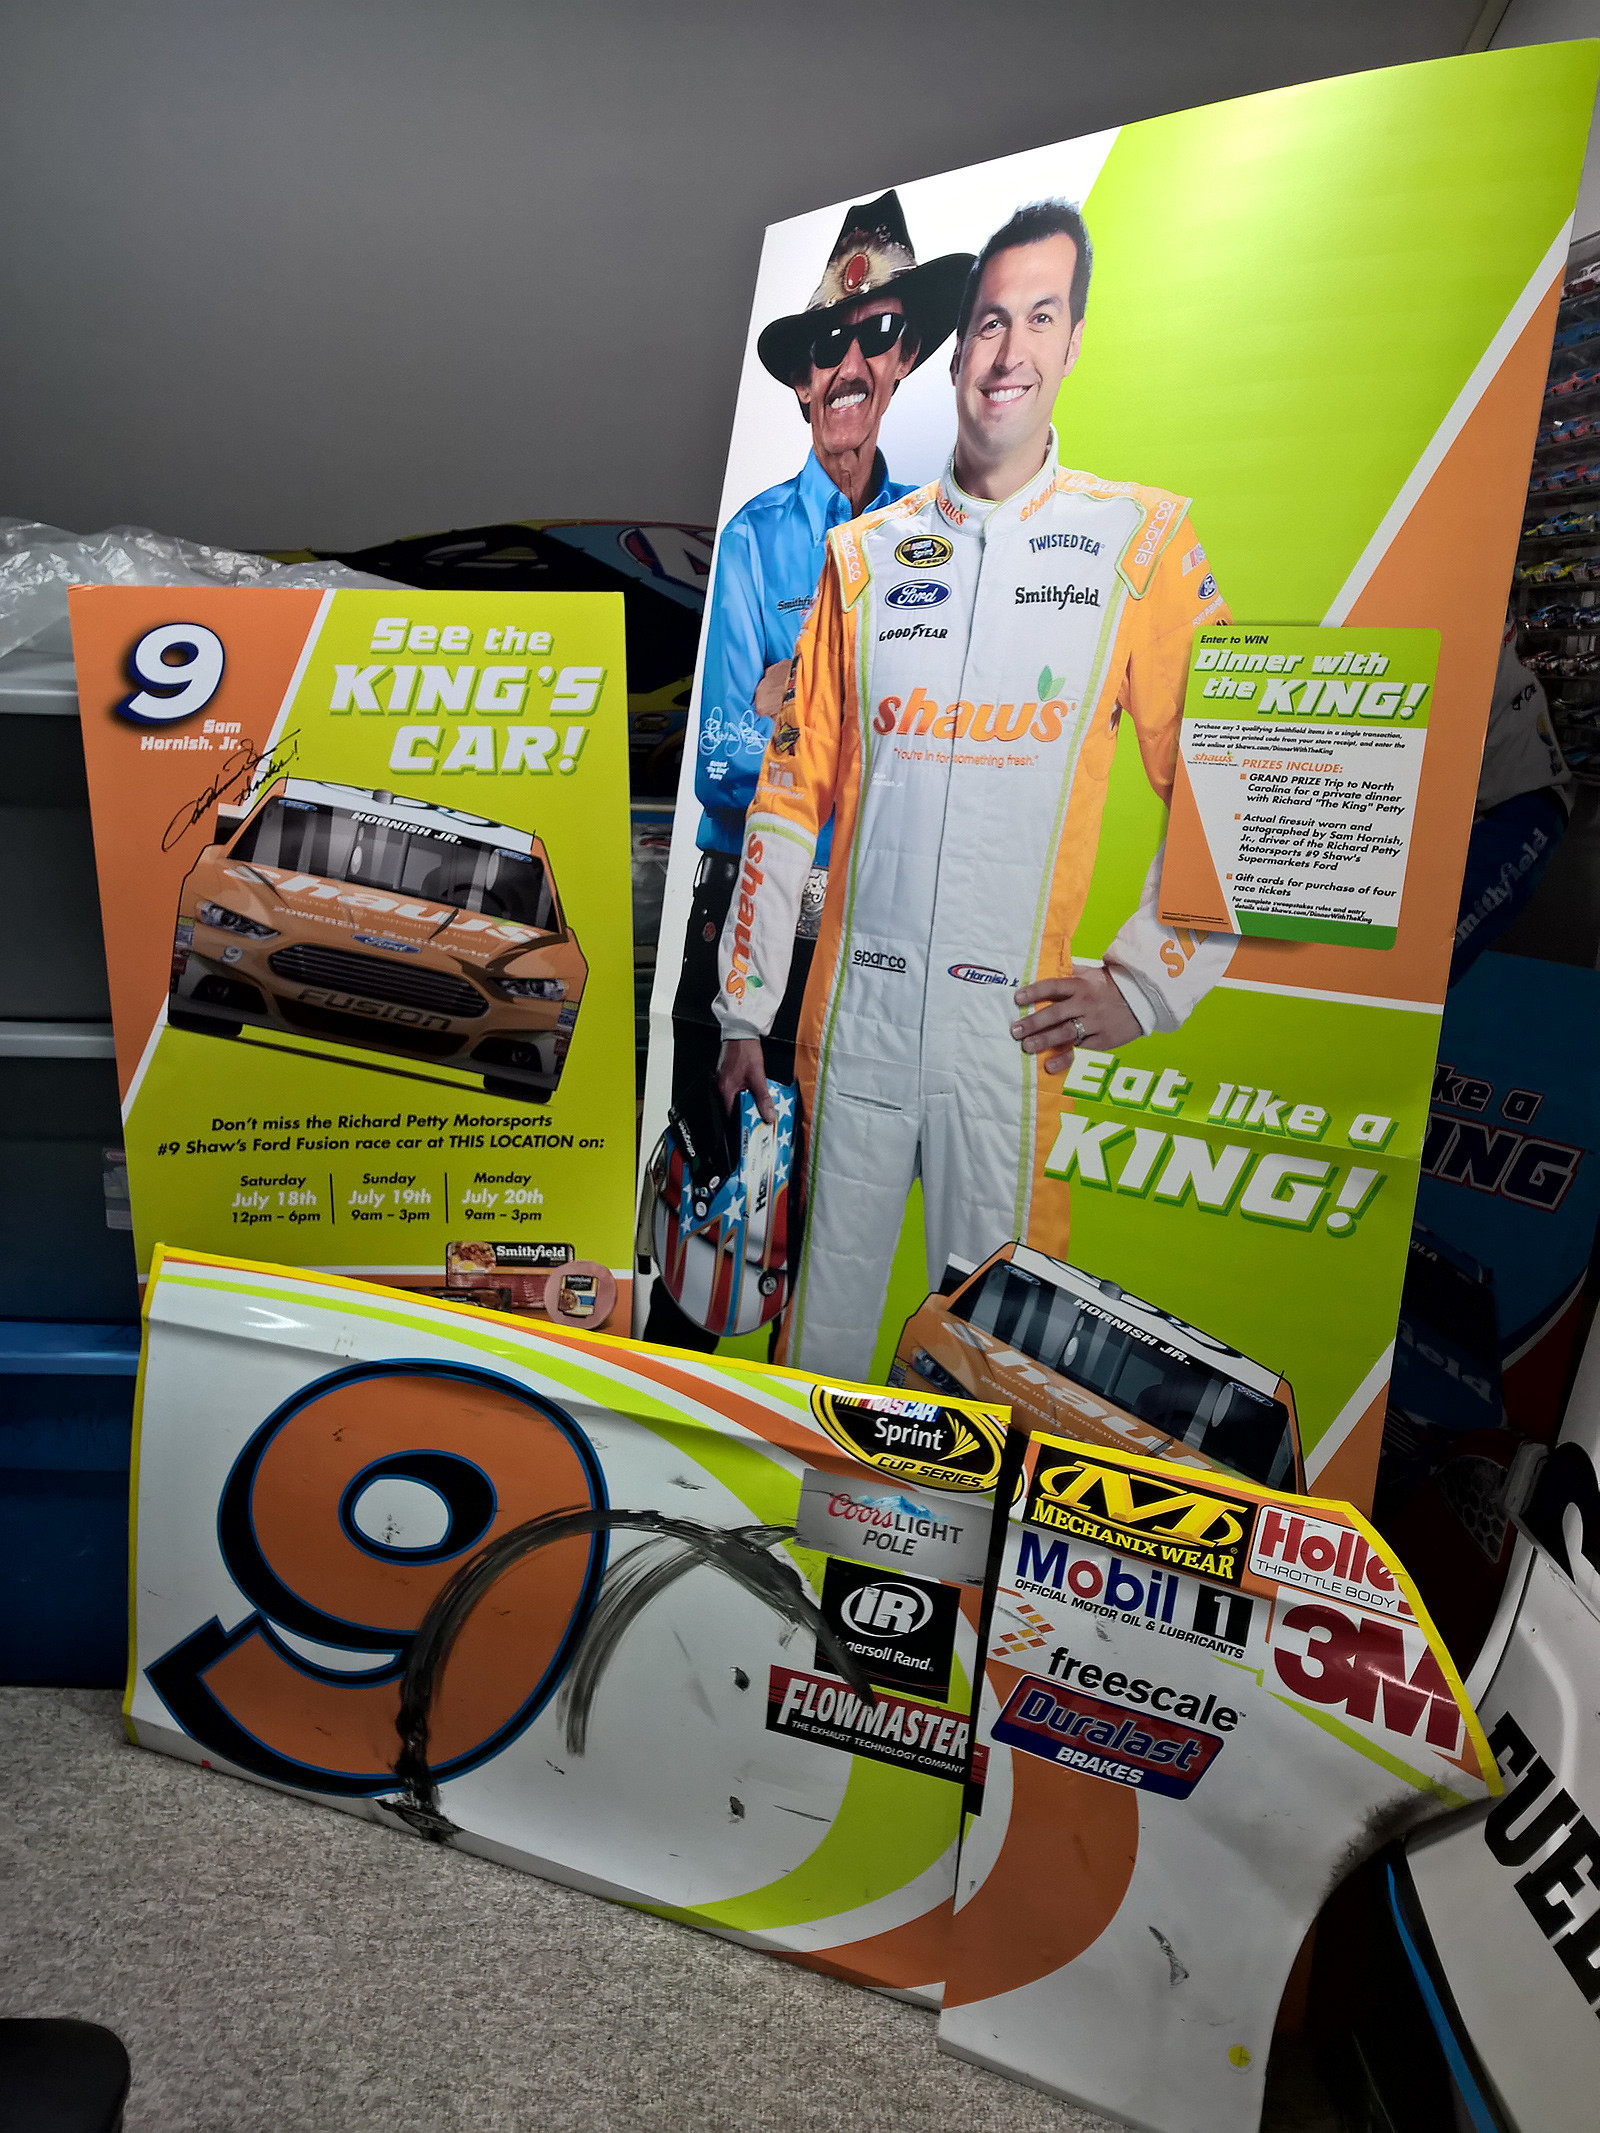 Shaw's Supermarkets store display standup featuring NASCAR legend and team owner Richard Petty and driver Sam Hornish Jr. with a door panel from the #9 race car in my personal collection.